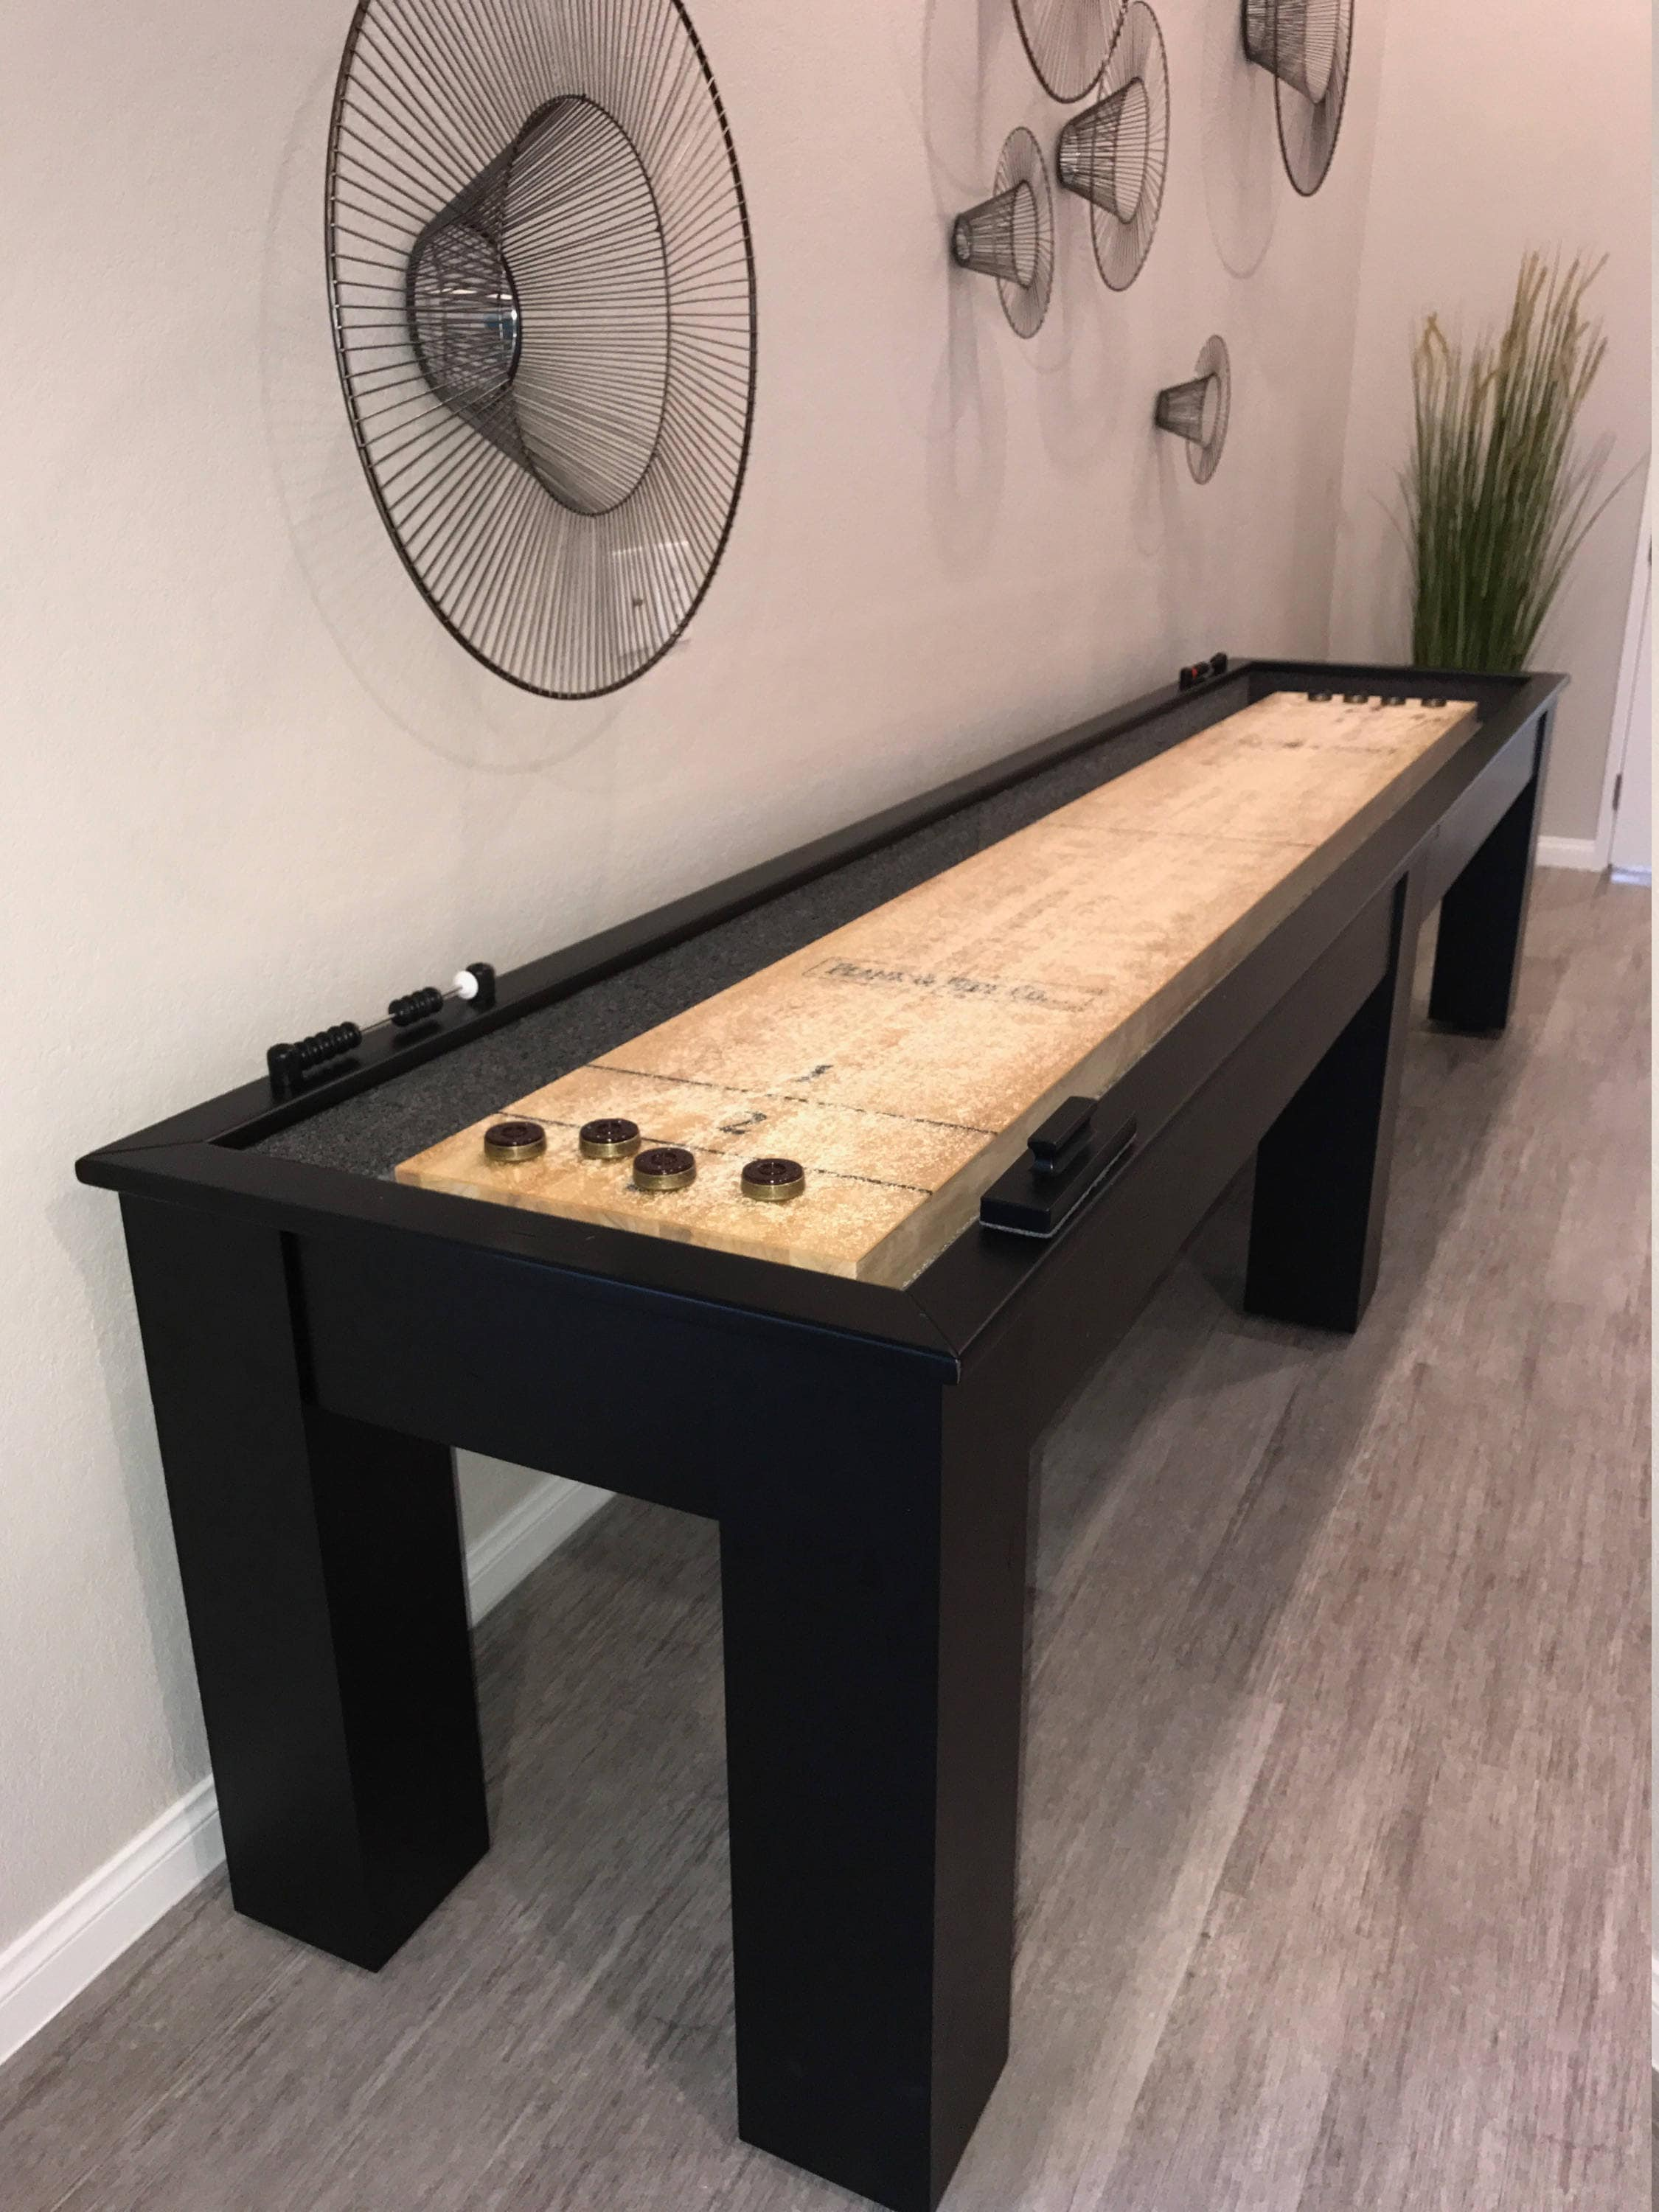 12u0027 Shuffleboard Table Butcher Block Table Pool Table Billiards Game Room  Furniture Game Of Thrones Rustic Gaming Tables ManCave Bar Cabinet